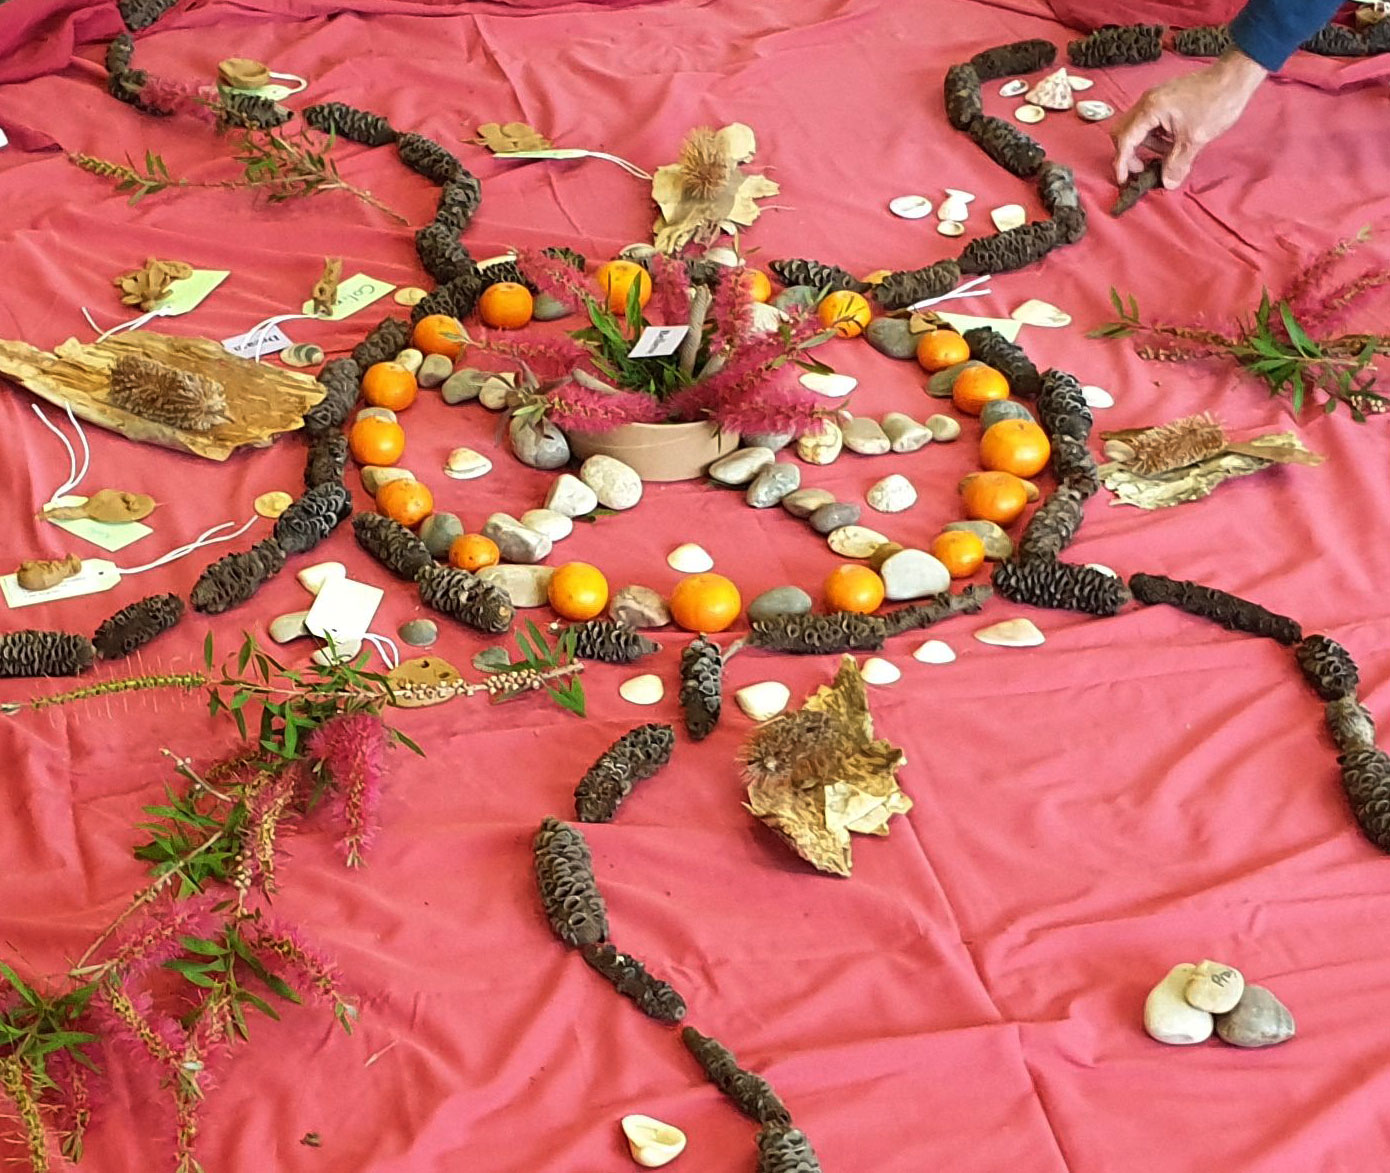 Nature collage with sticks and rocks on red fabric floor